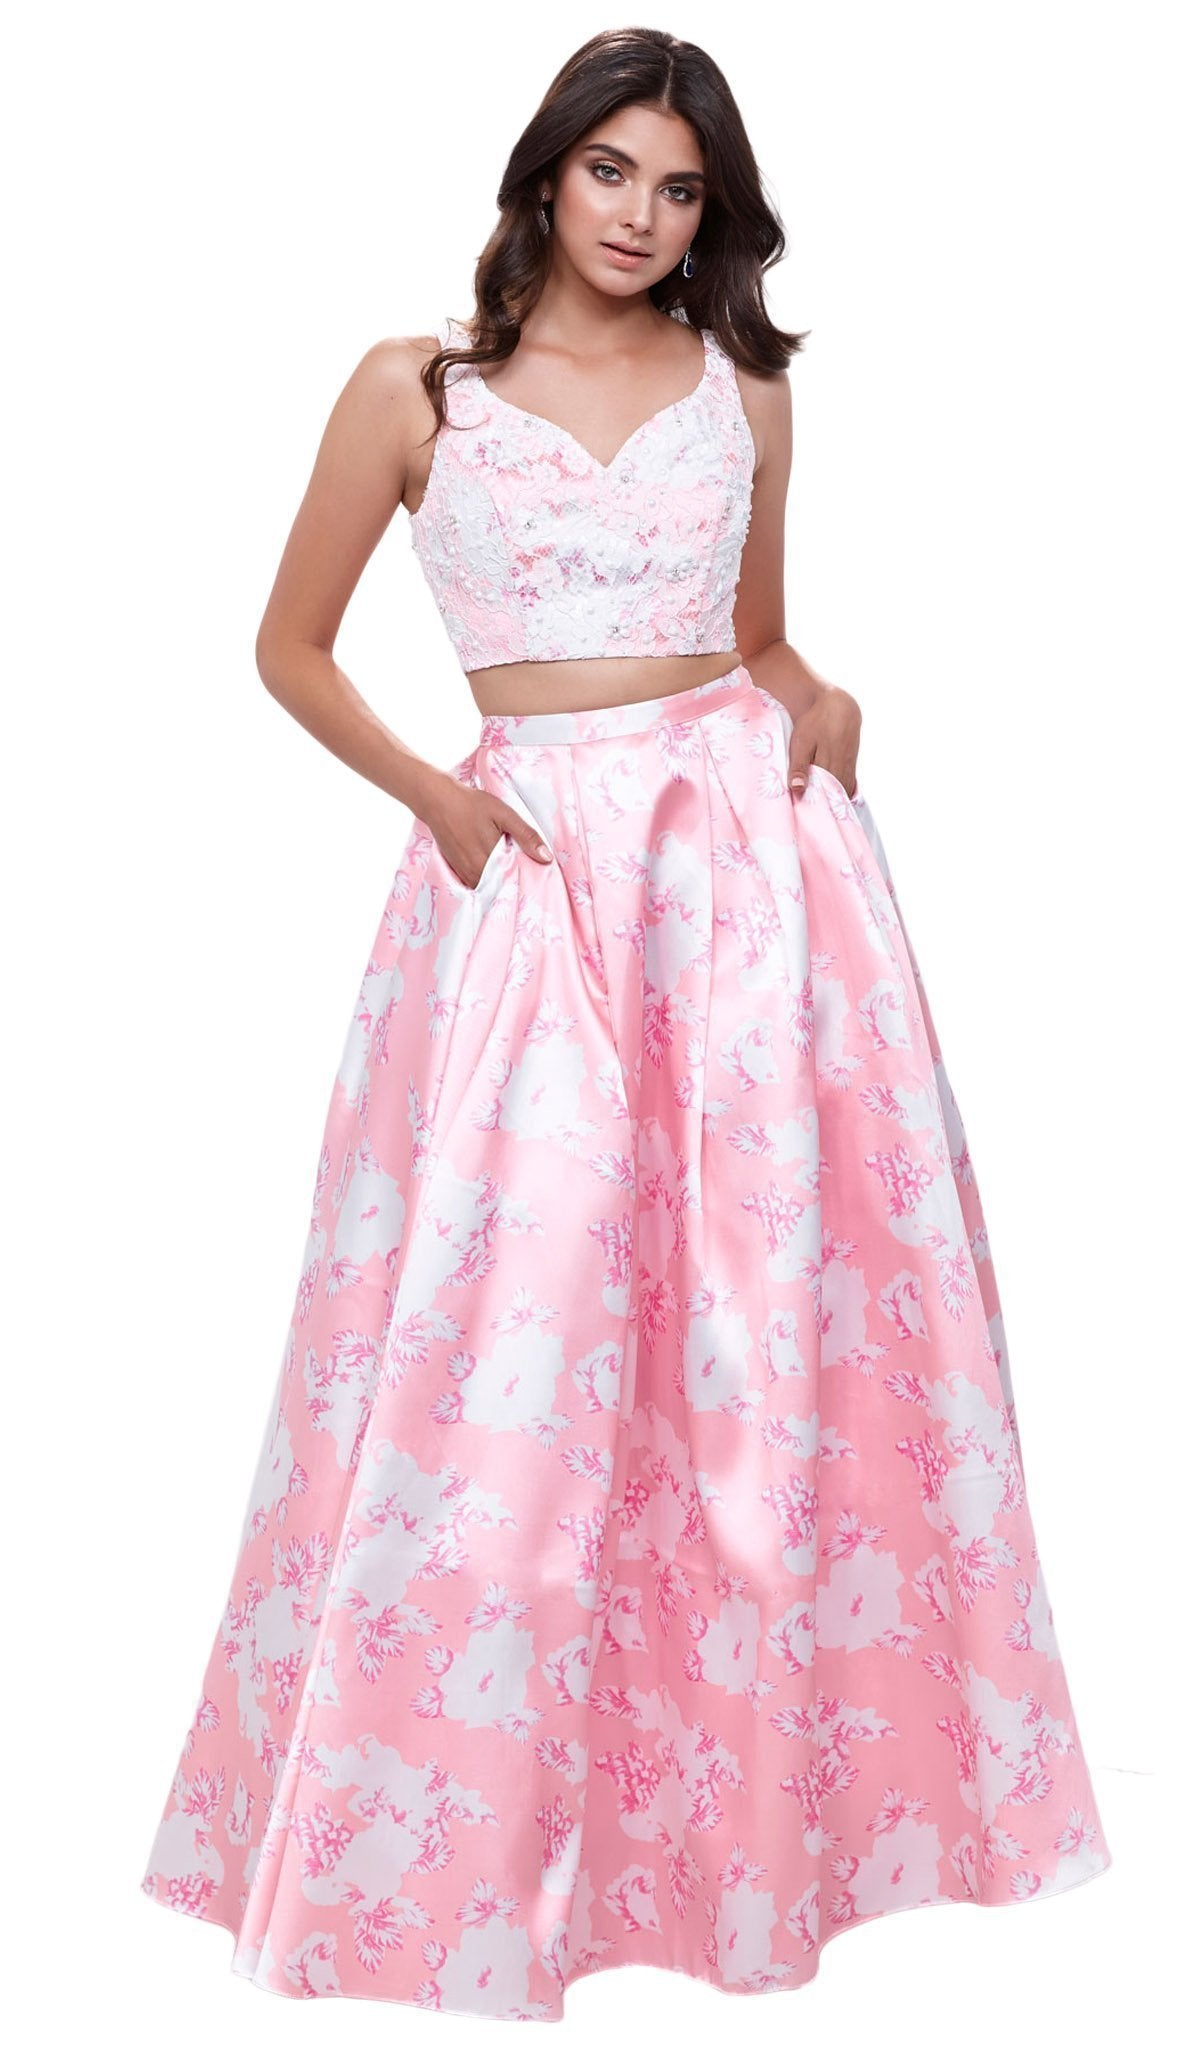 Nox Anabel - Two-Piece Floral A-line Evening Gown 8312SC